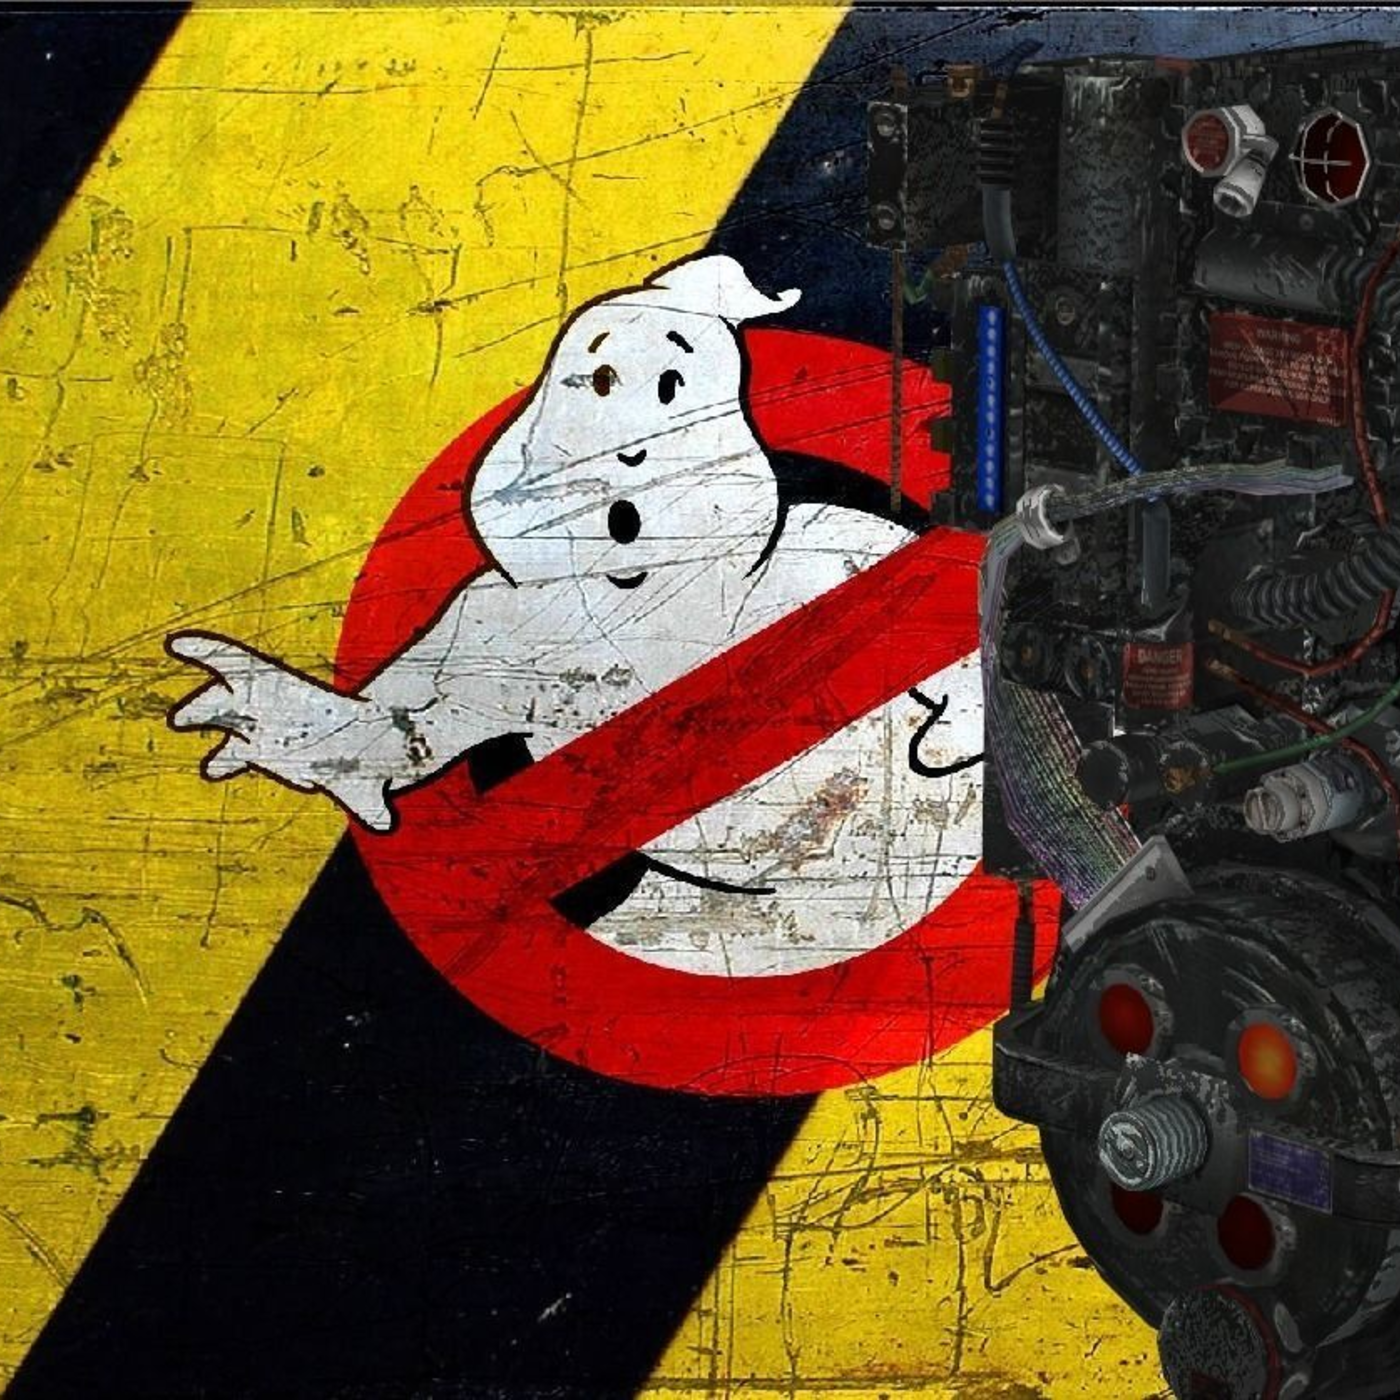 Ghostbusters Parts and Equipment